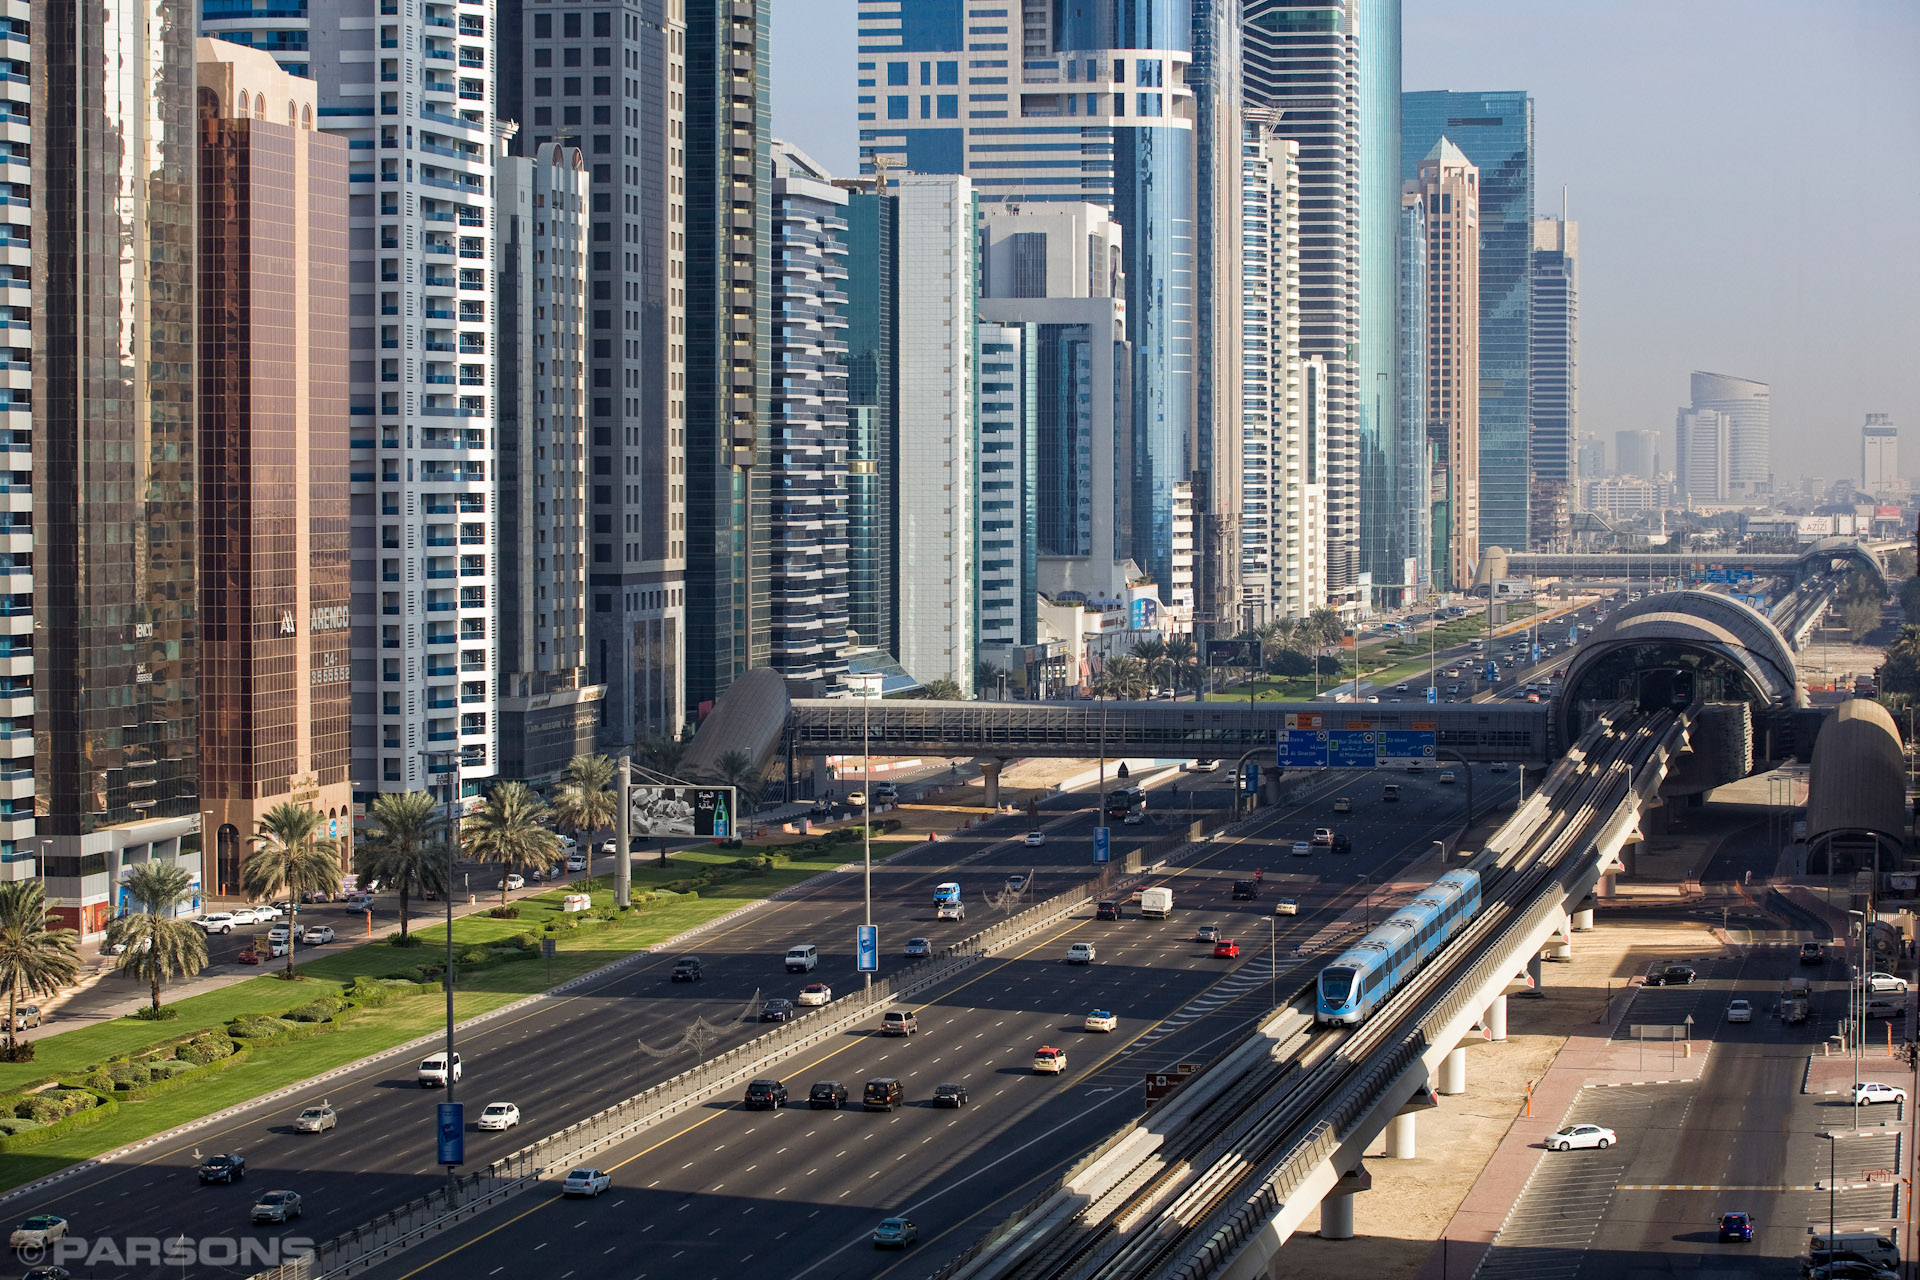 Civil-Engineering-Dubai-Metro-Skyline-UAE.JPG